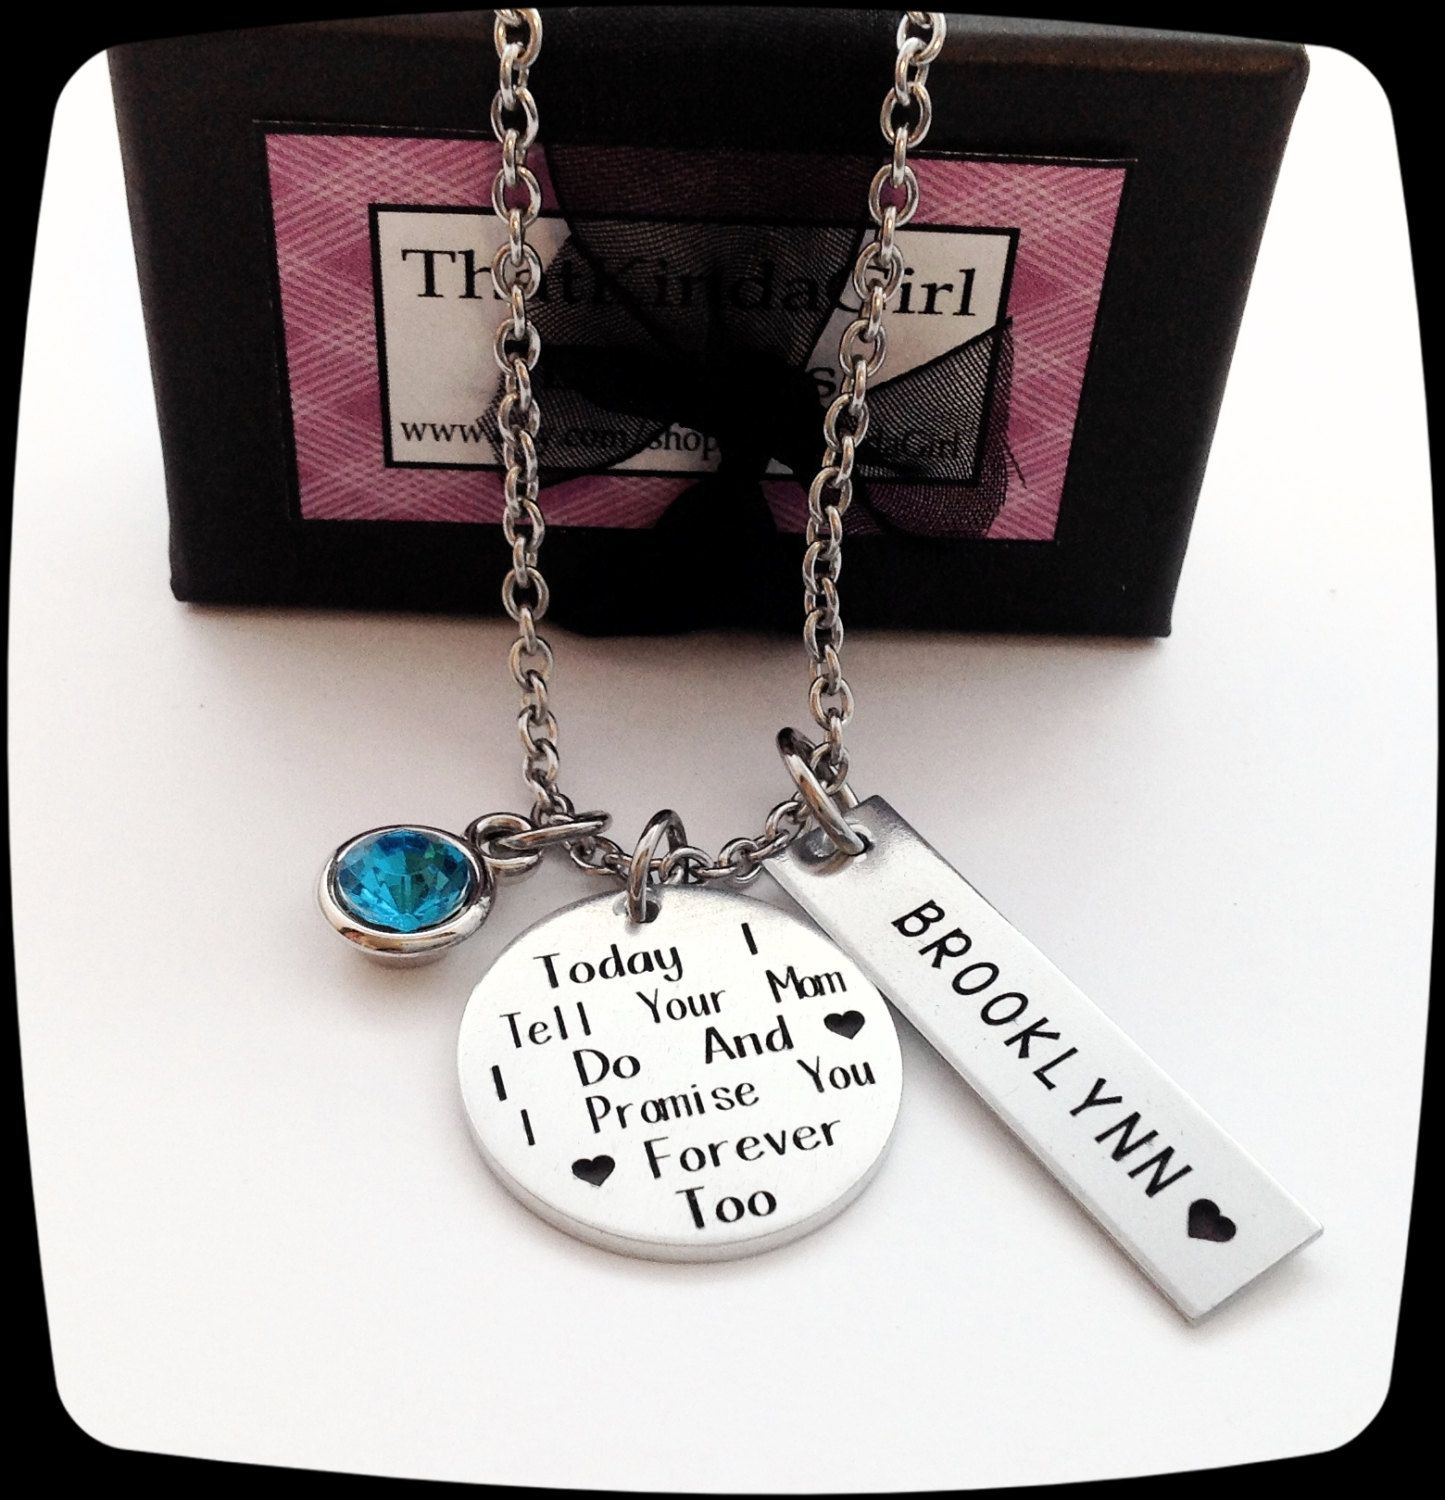 Daughter of bride jewelry step daughter gift blended